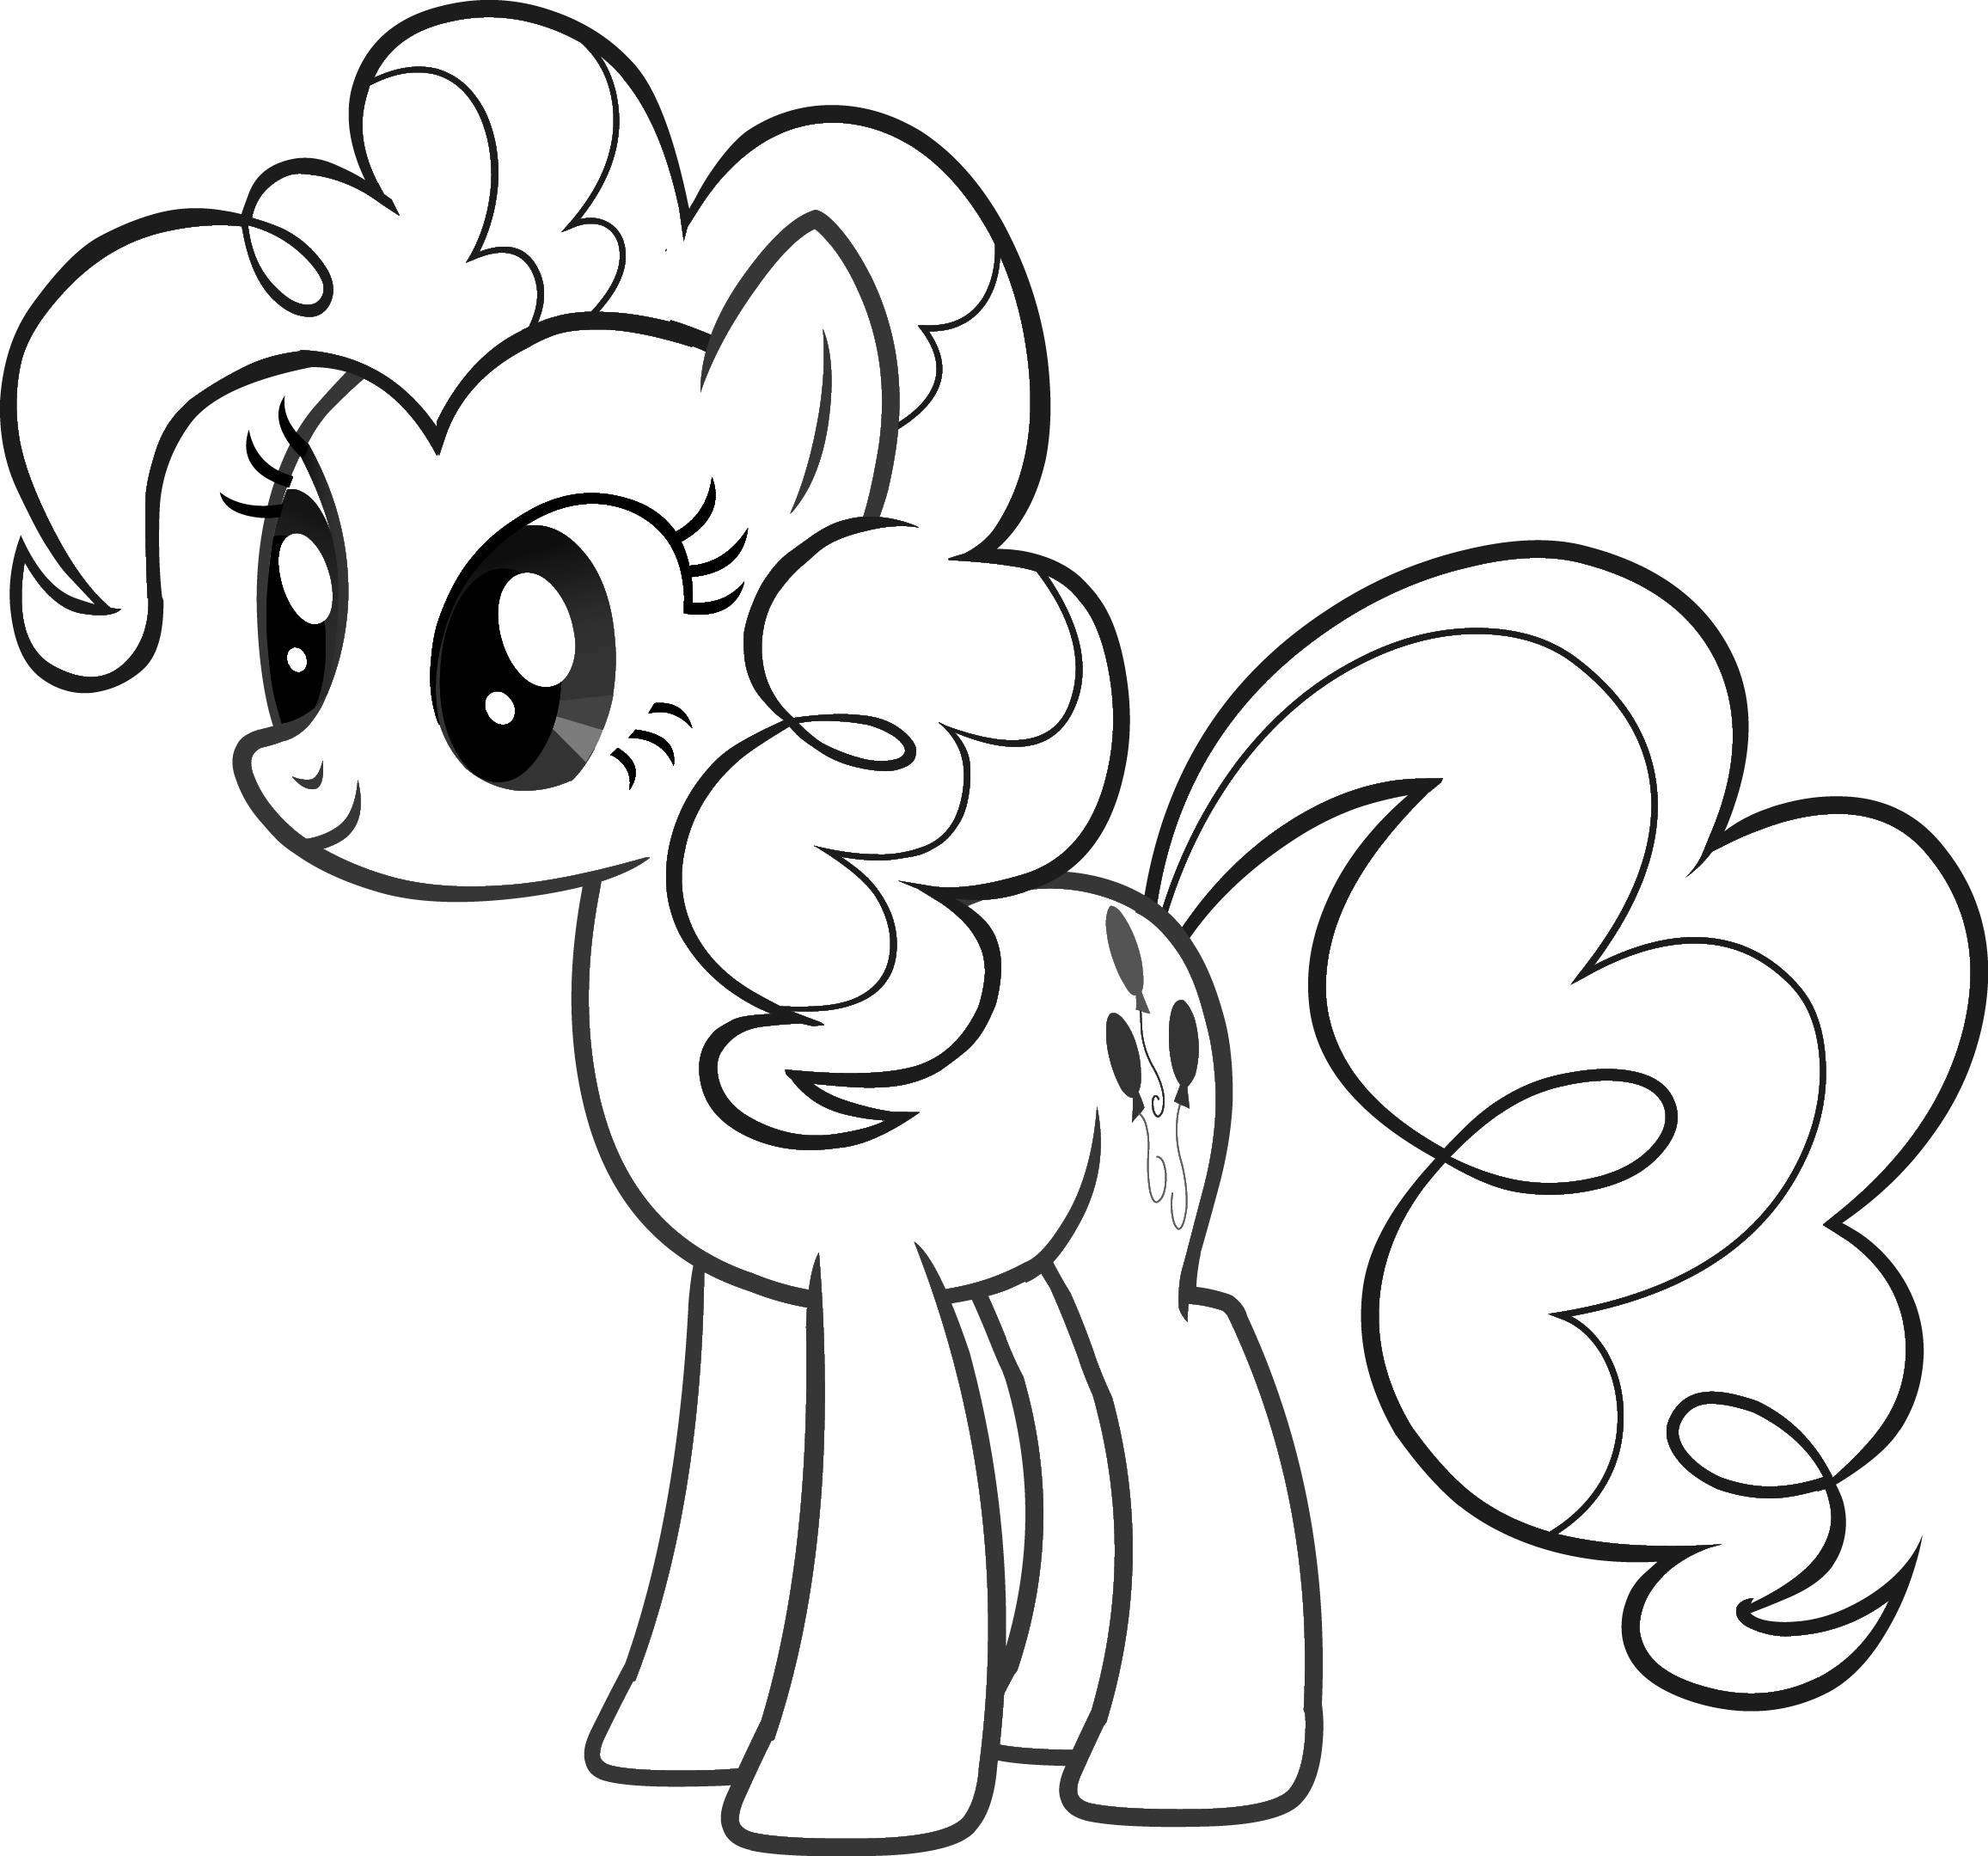 Drawn my little pony coloring book For Pony Free Pages Pony